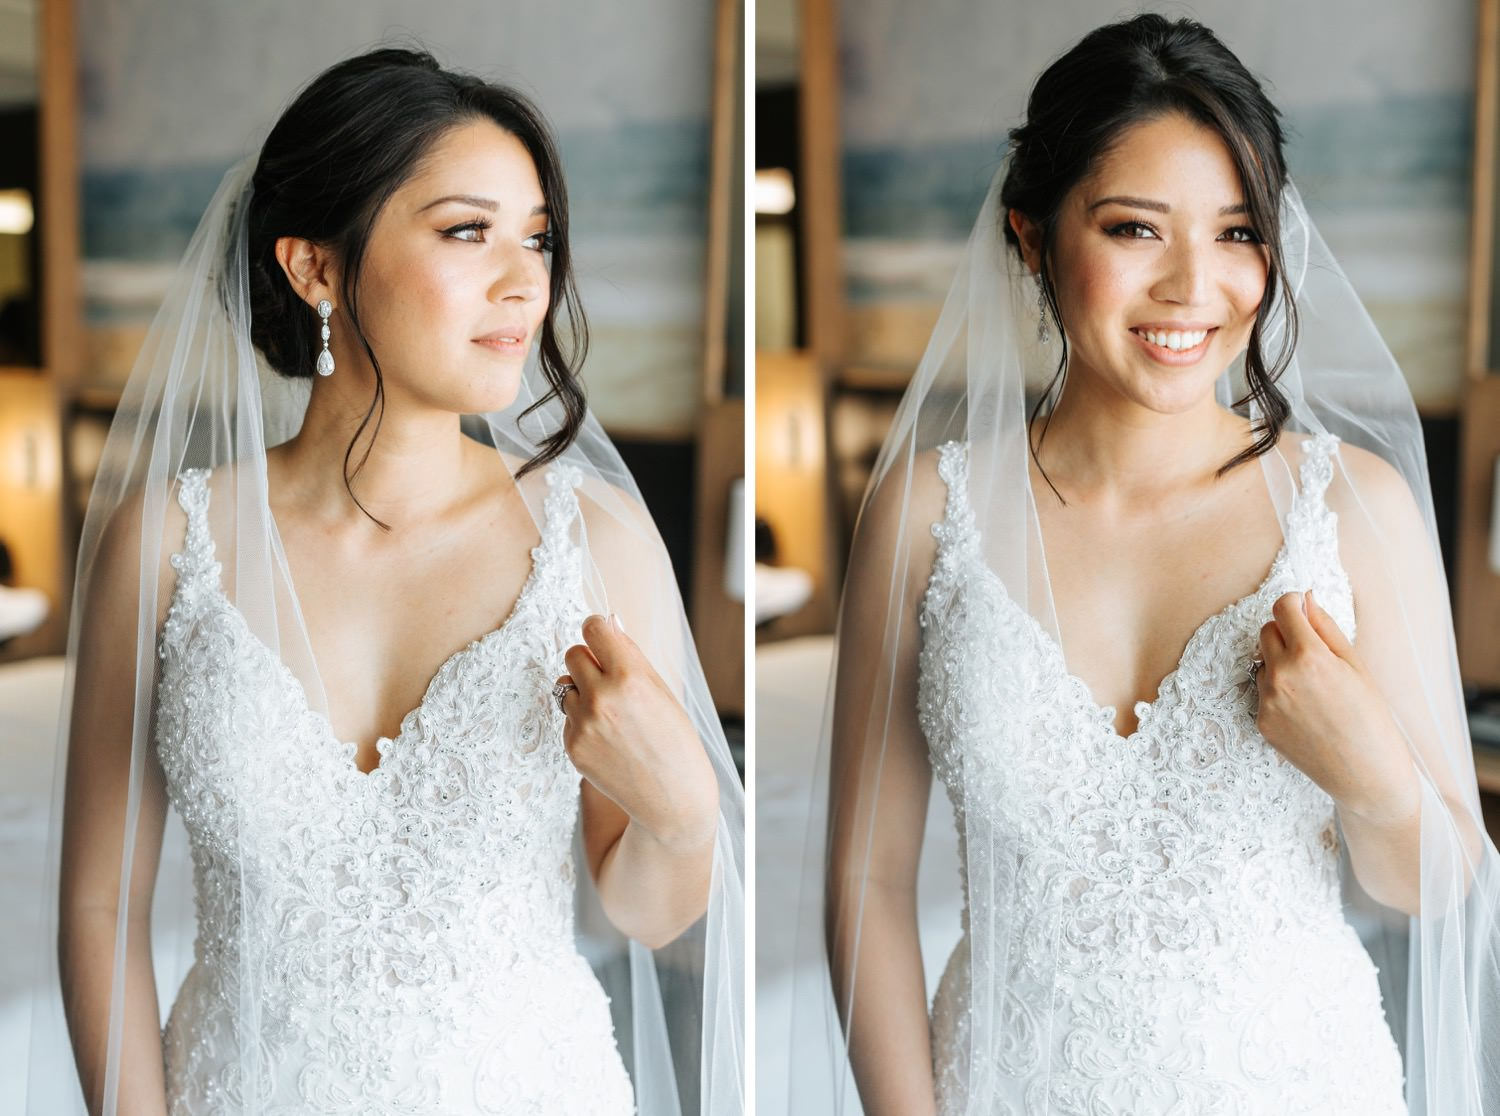 Gorgeous bridal portraits - Los Angeles Wedding Photographer - https://brittneyhannonphotography.com